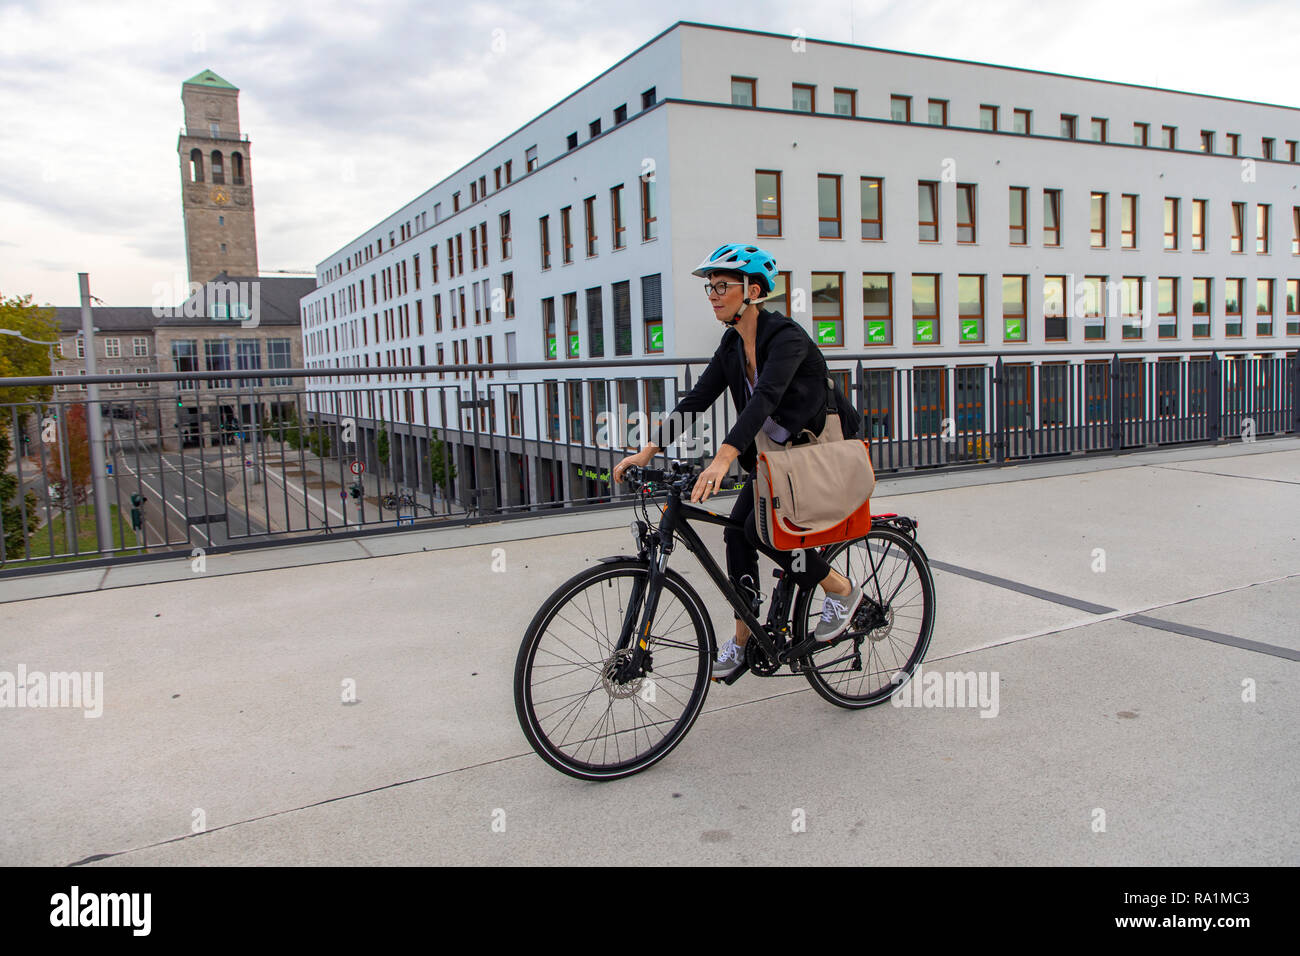 Fast cycling track, Radschnellweg RS1, in MŸlheim an der Ruhr, Germany, on a former railway viaduct, in the middle of the city center, commuter, with  - Stock Image